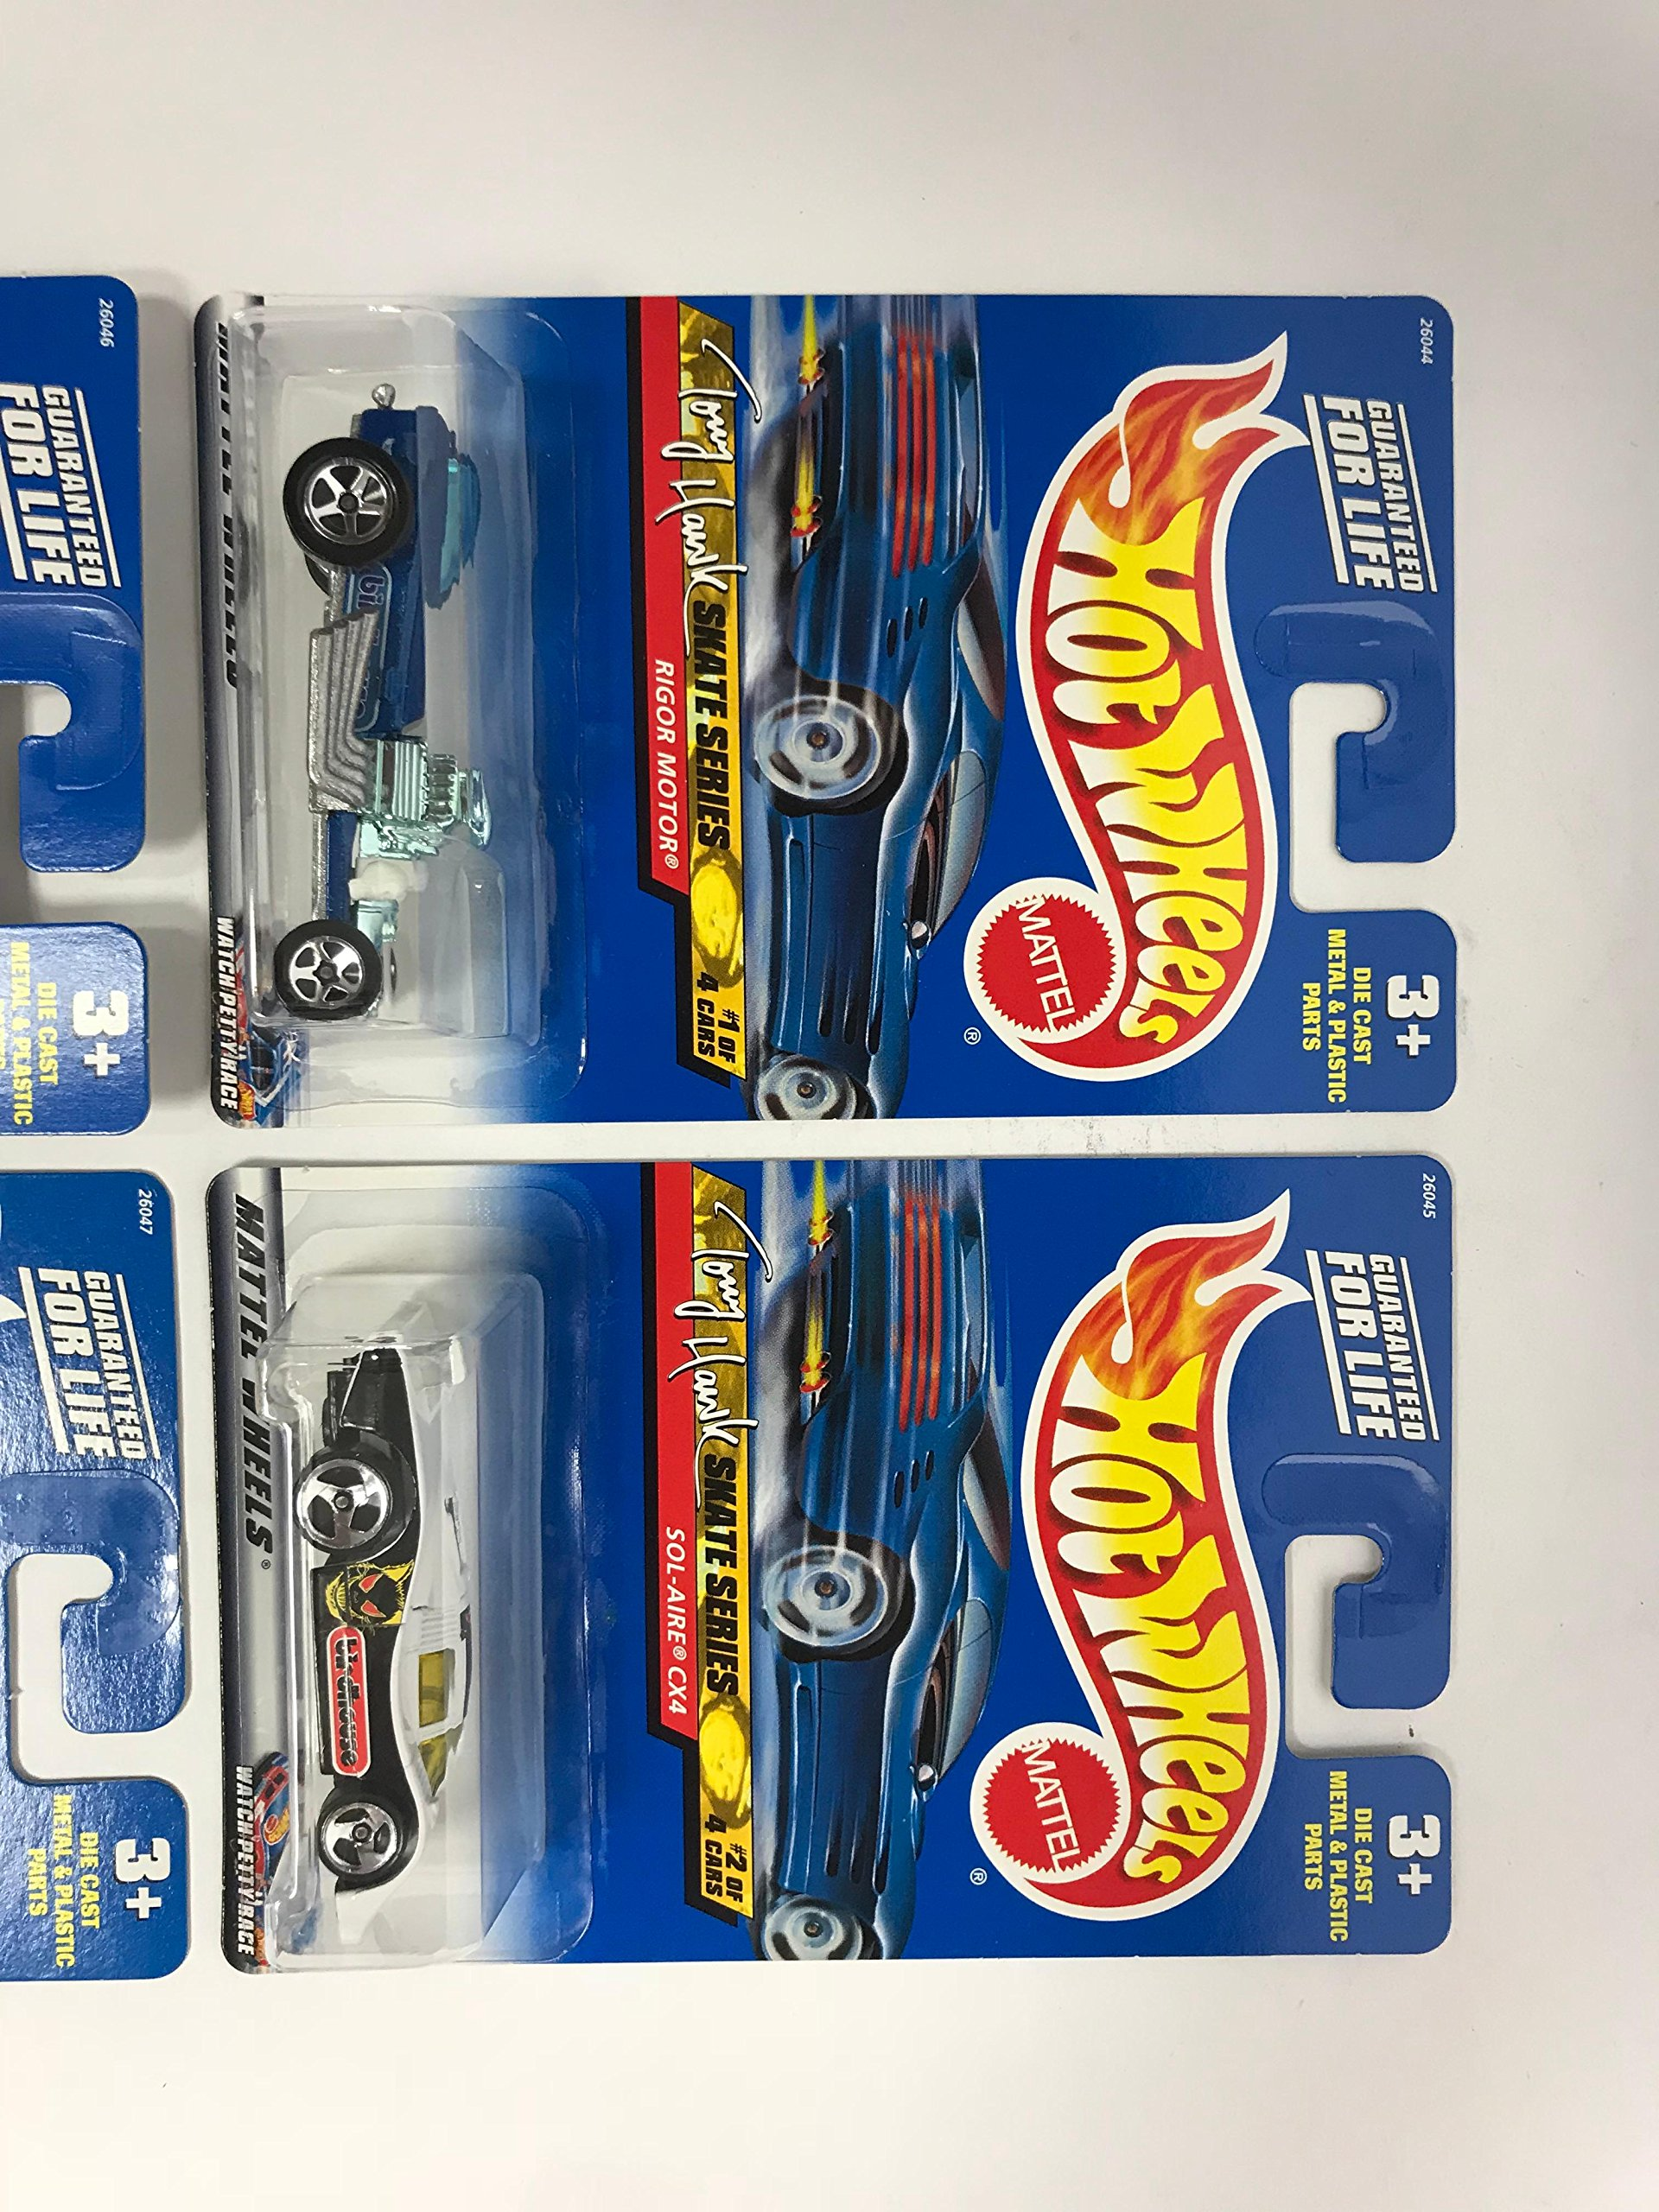 2000 Hot Wheels TONY HAWK SKATE SERIES Complete Set (1 4) with Speed Blaster